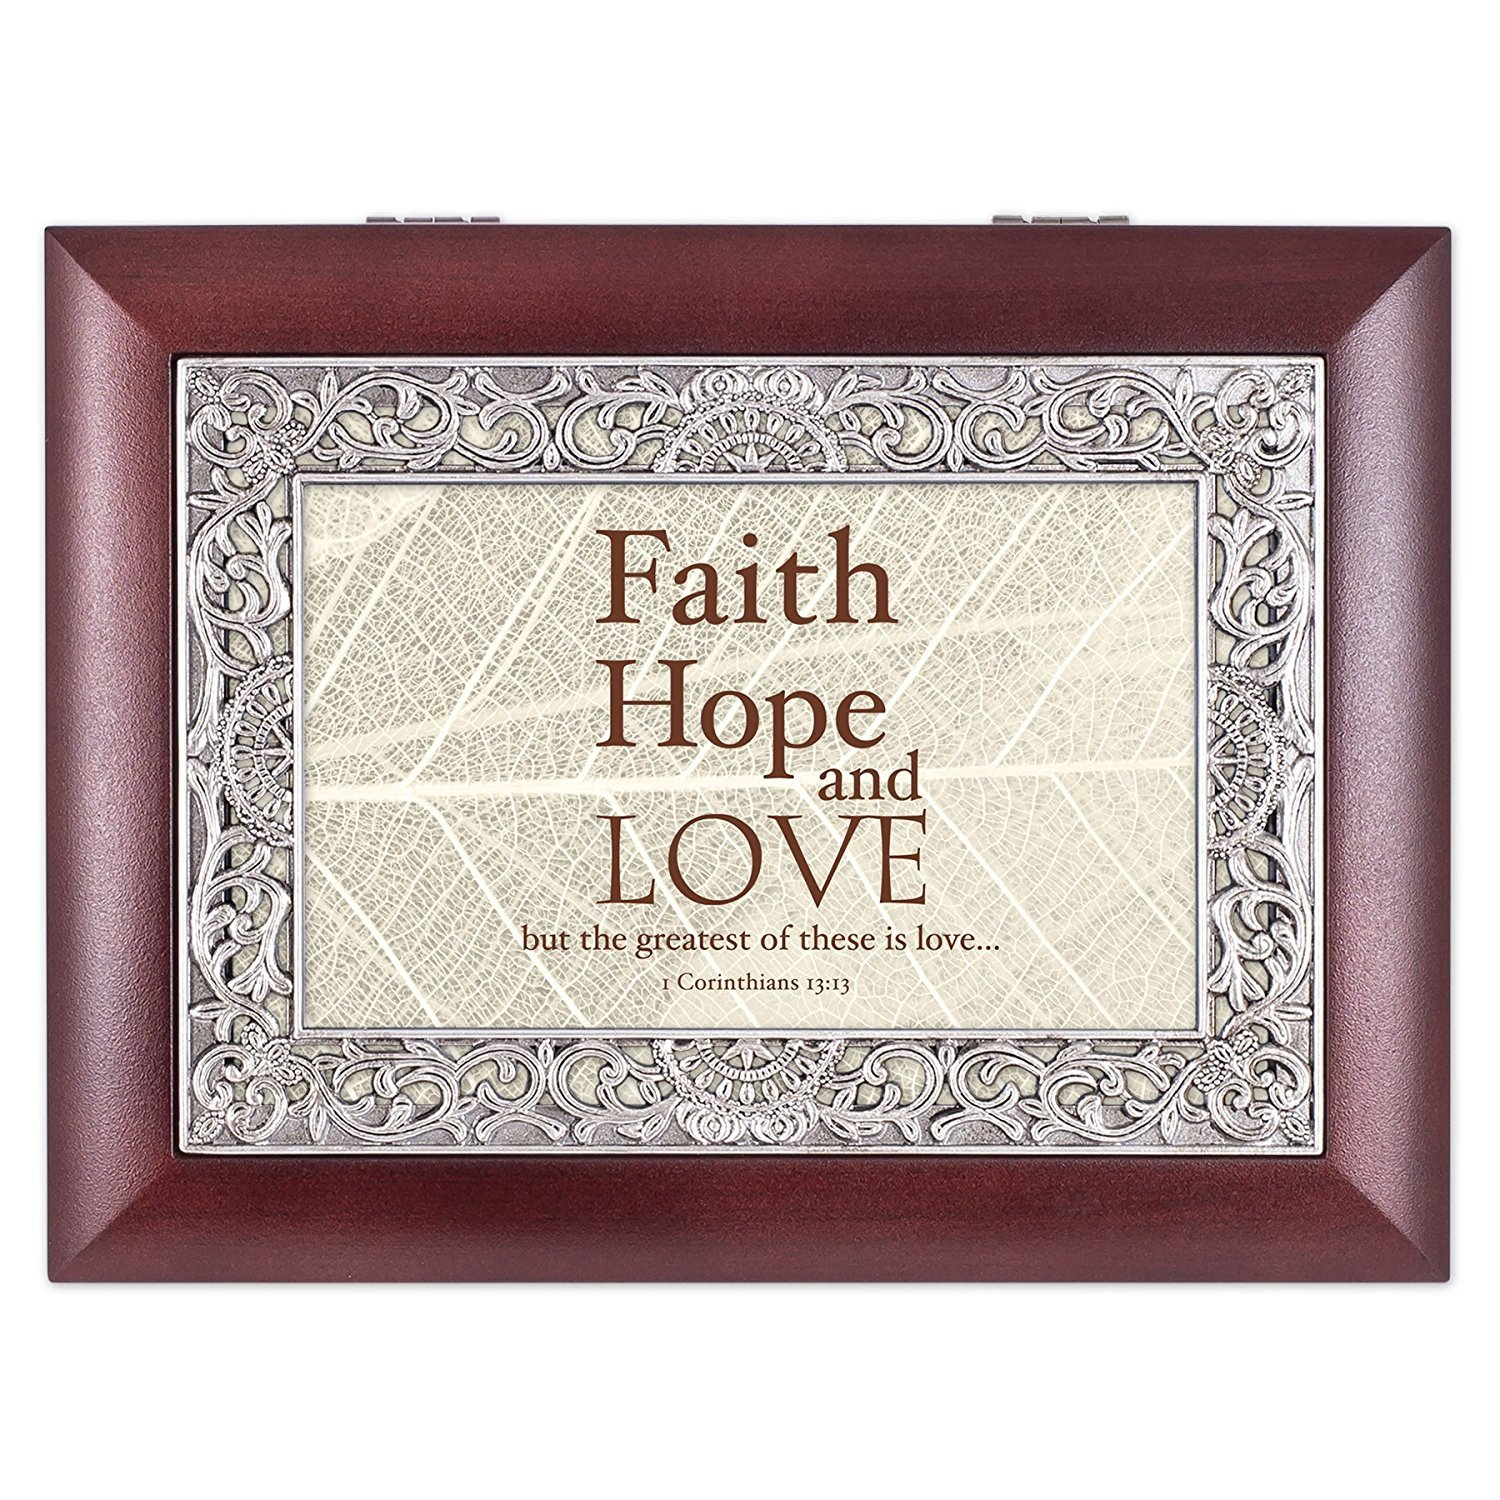 【絶品】 Faith Love Hope Love Leaves 1 B01GGKLGKU Corinthians 13 : 13 Leaves Ornateローズウッドジュエリー音楽ボックスPlays Wonderful World B01GGKLGKU, ブレゲカメラ:ab906fdc --- arcego.dominiotemporario.com